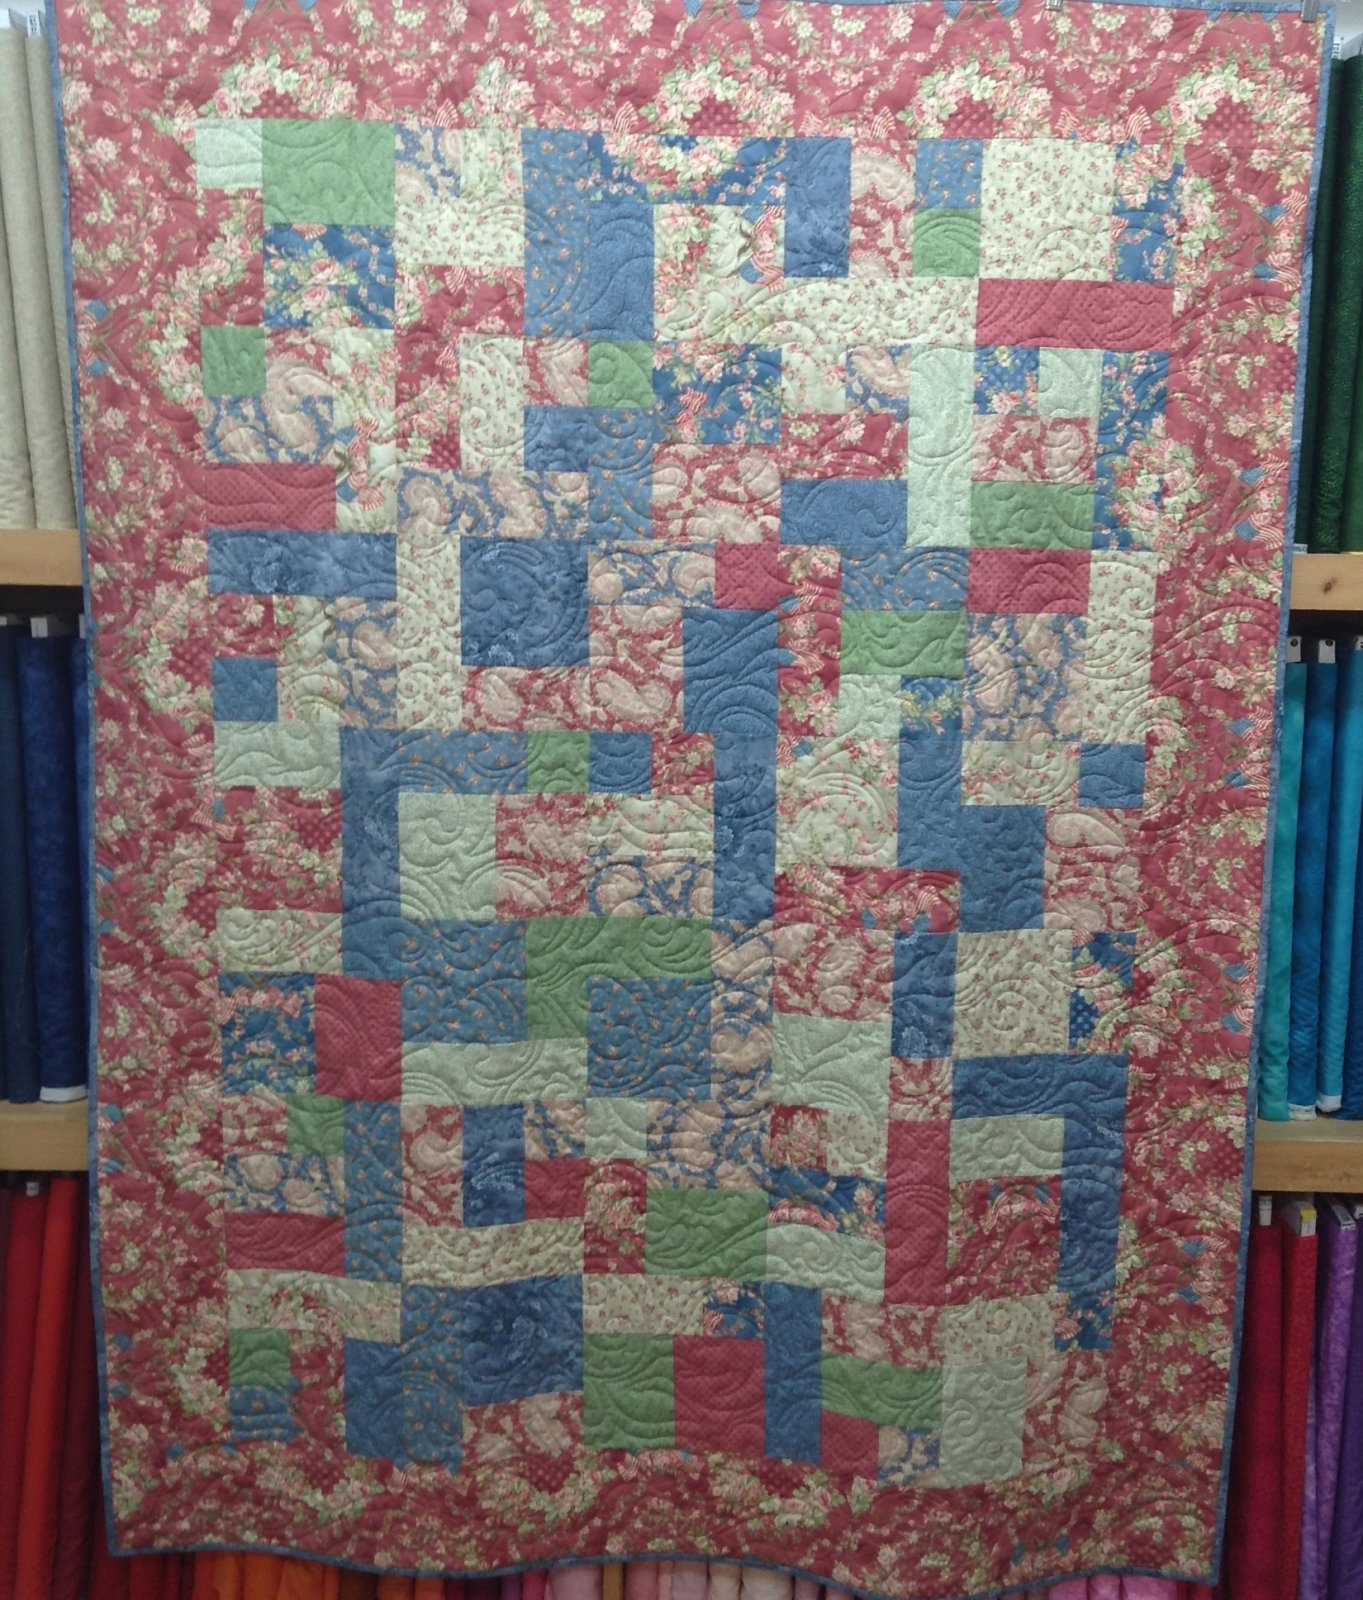 Quilt for Sale:  featuring Faded Glory fabrics by Robyn Pandolph  55 x 73